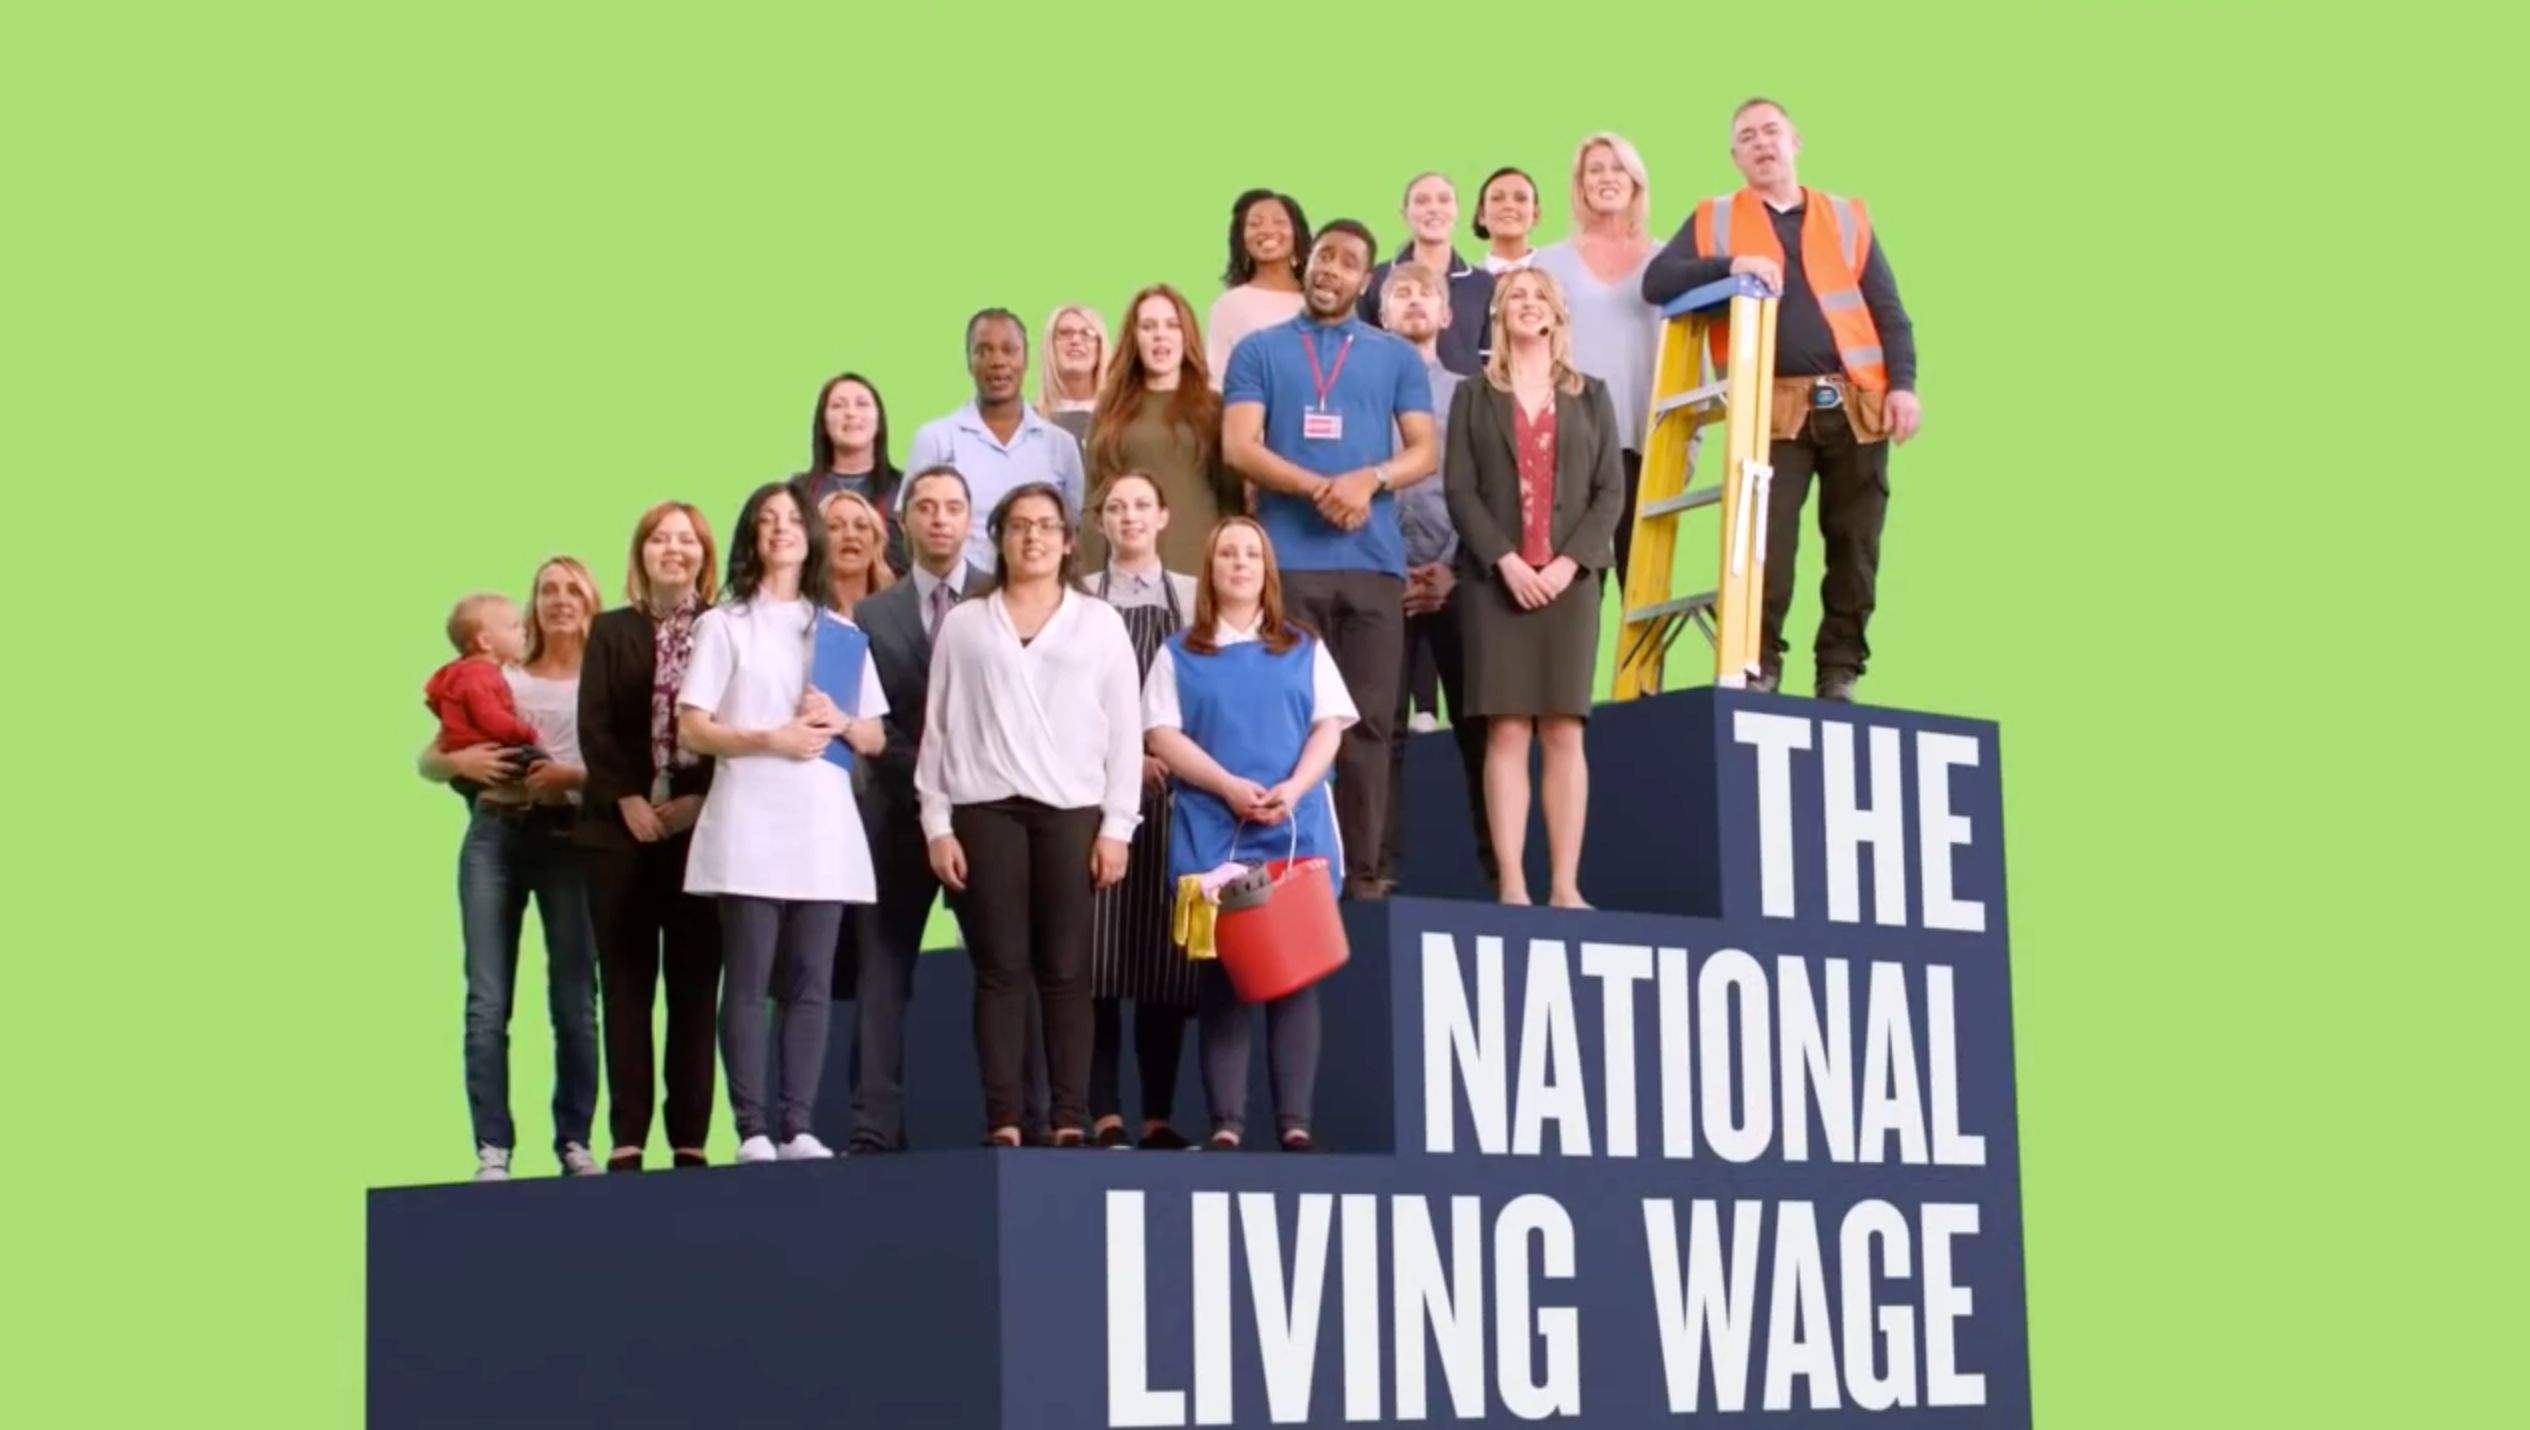 Osborne's Living Wage Advert Features Actor Under 25 Who Can't Receive